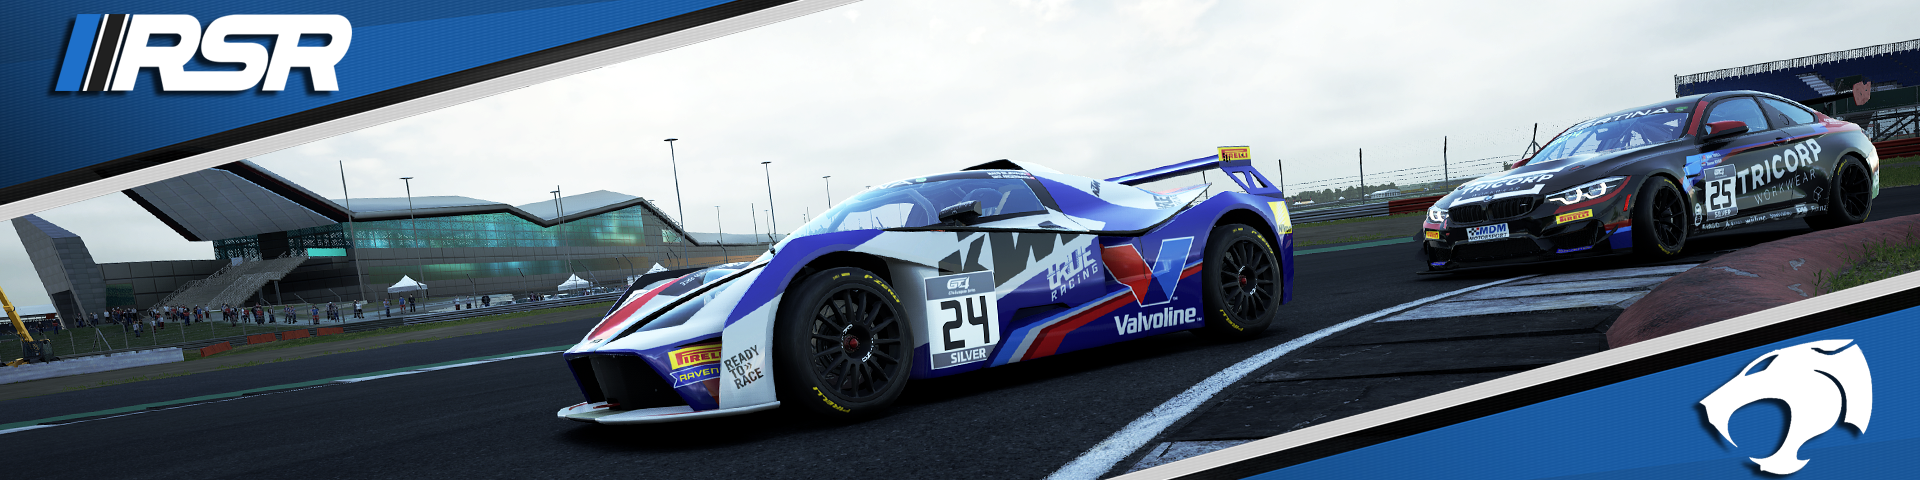 RSR_PRD_S4 - Round 0.png